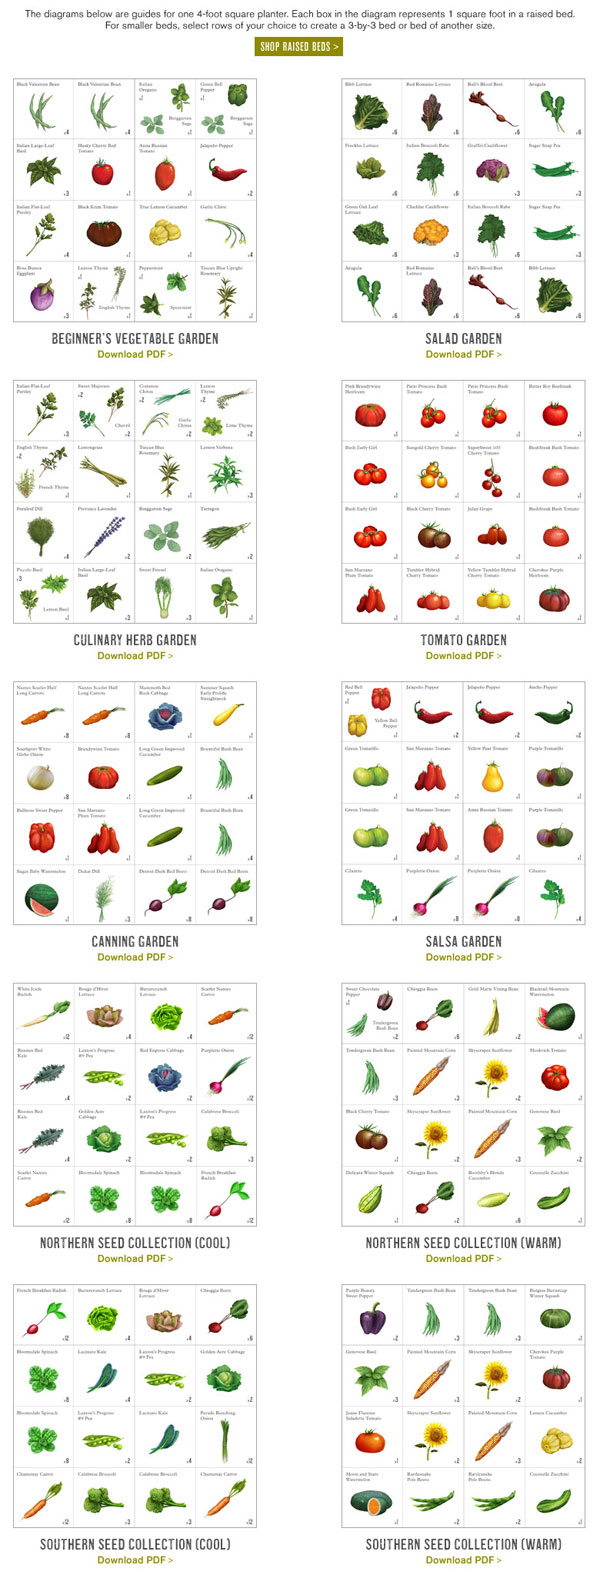 hight resolution of williams sonoma plant a gram for raised bed gardens